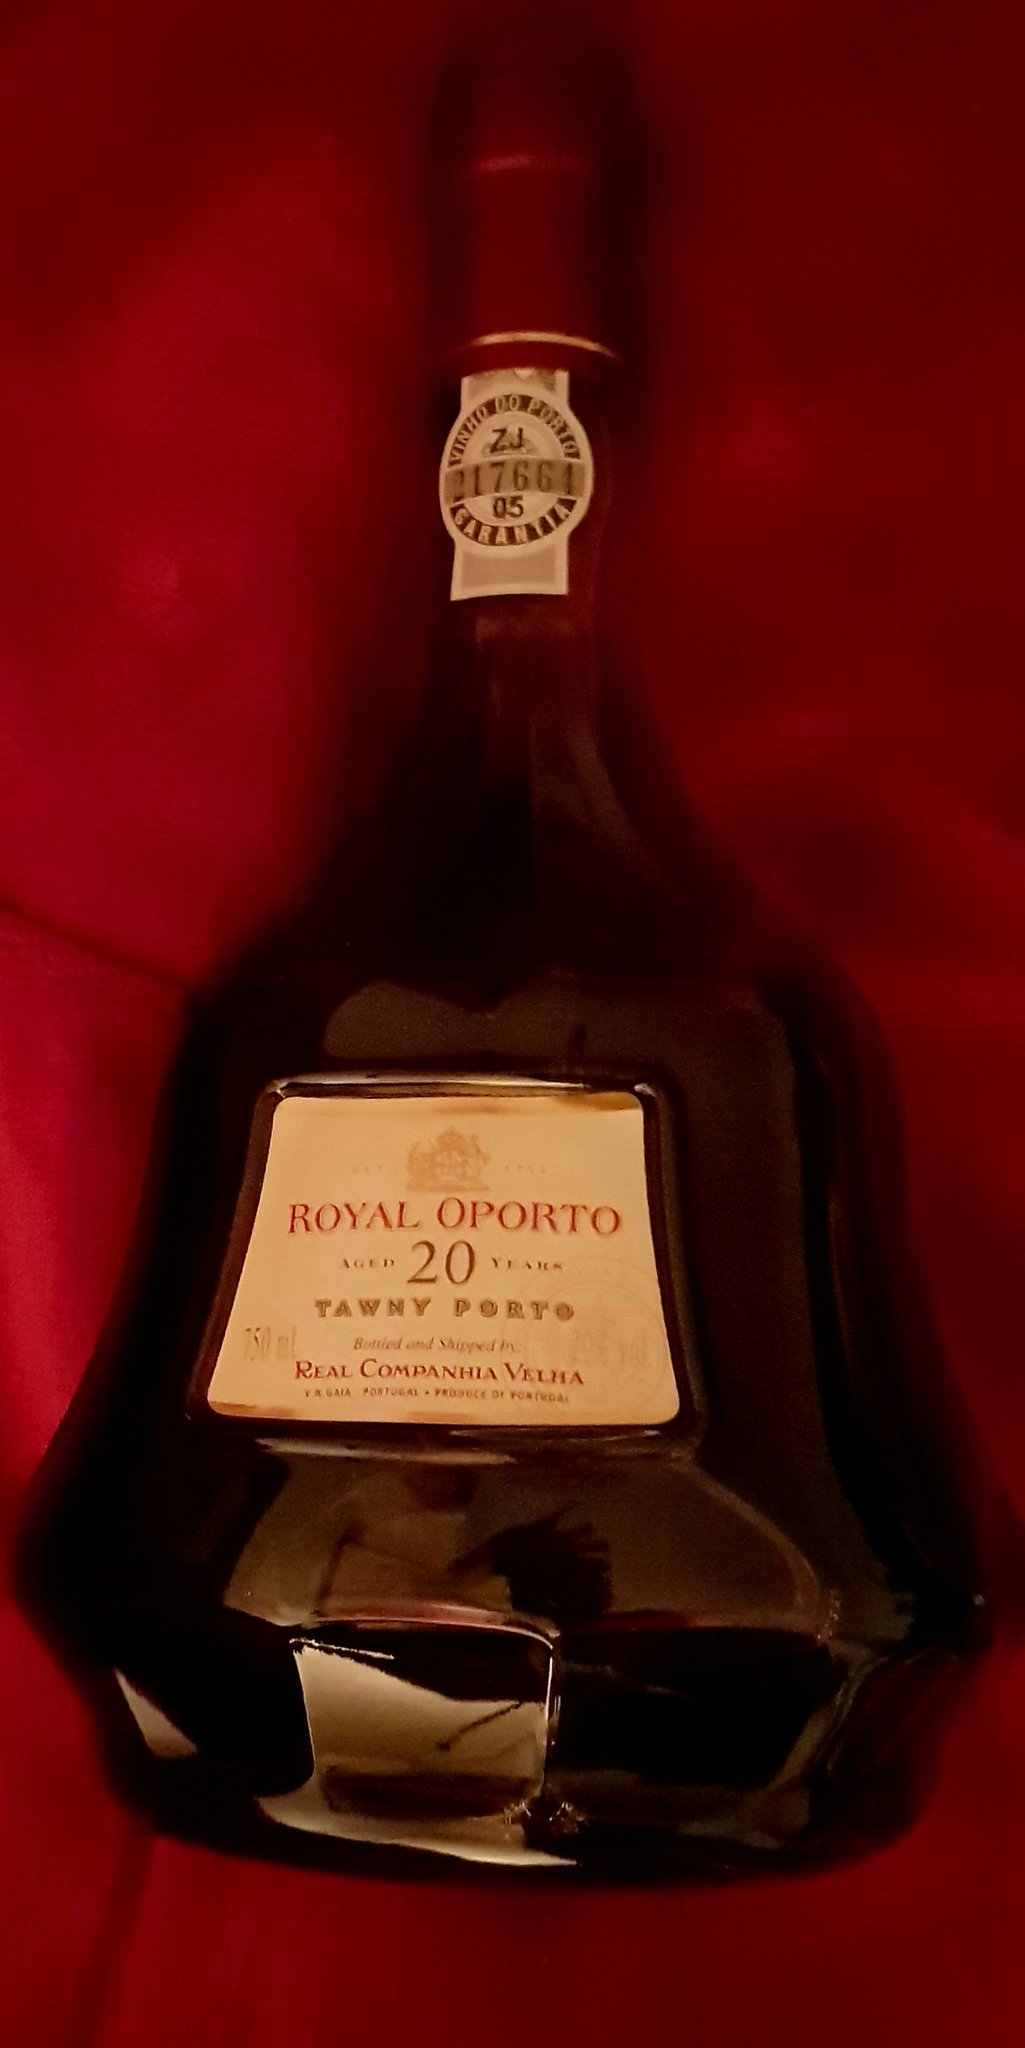 I love it 🍷😁👍🍷 : A very elegant port with a scent of roses and almonds, with finely nuanced sweetness. Rich, soft and soft with a fine fruity taste, well integrated and Balance #port #portwine @JMiquelWine @TweetaDean @winewankers @MrScottEddy @PortWineInc https://t.co/QYgzDUH0sq